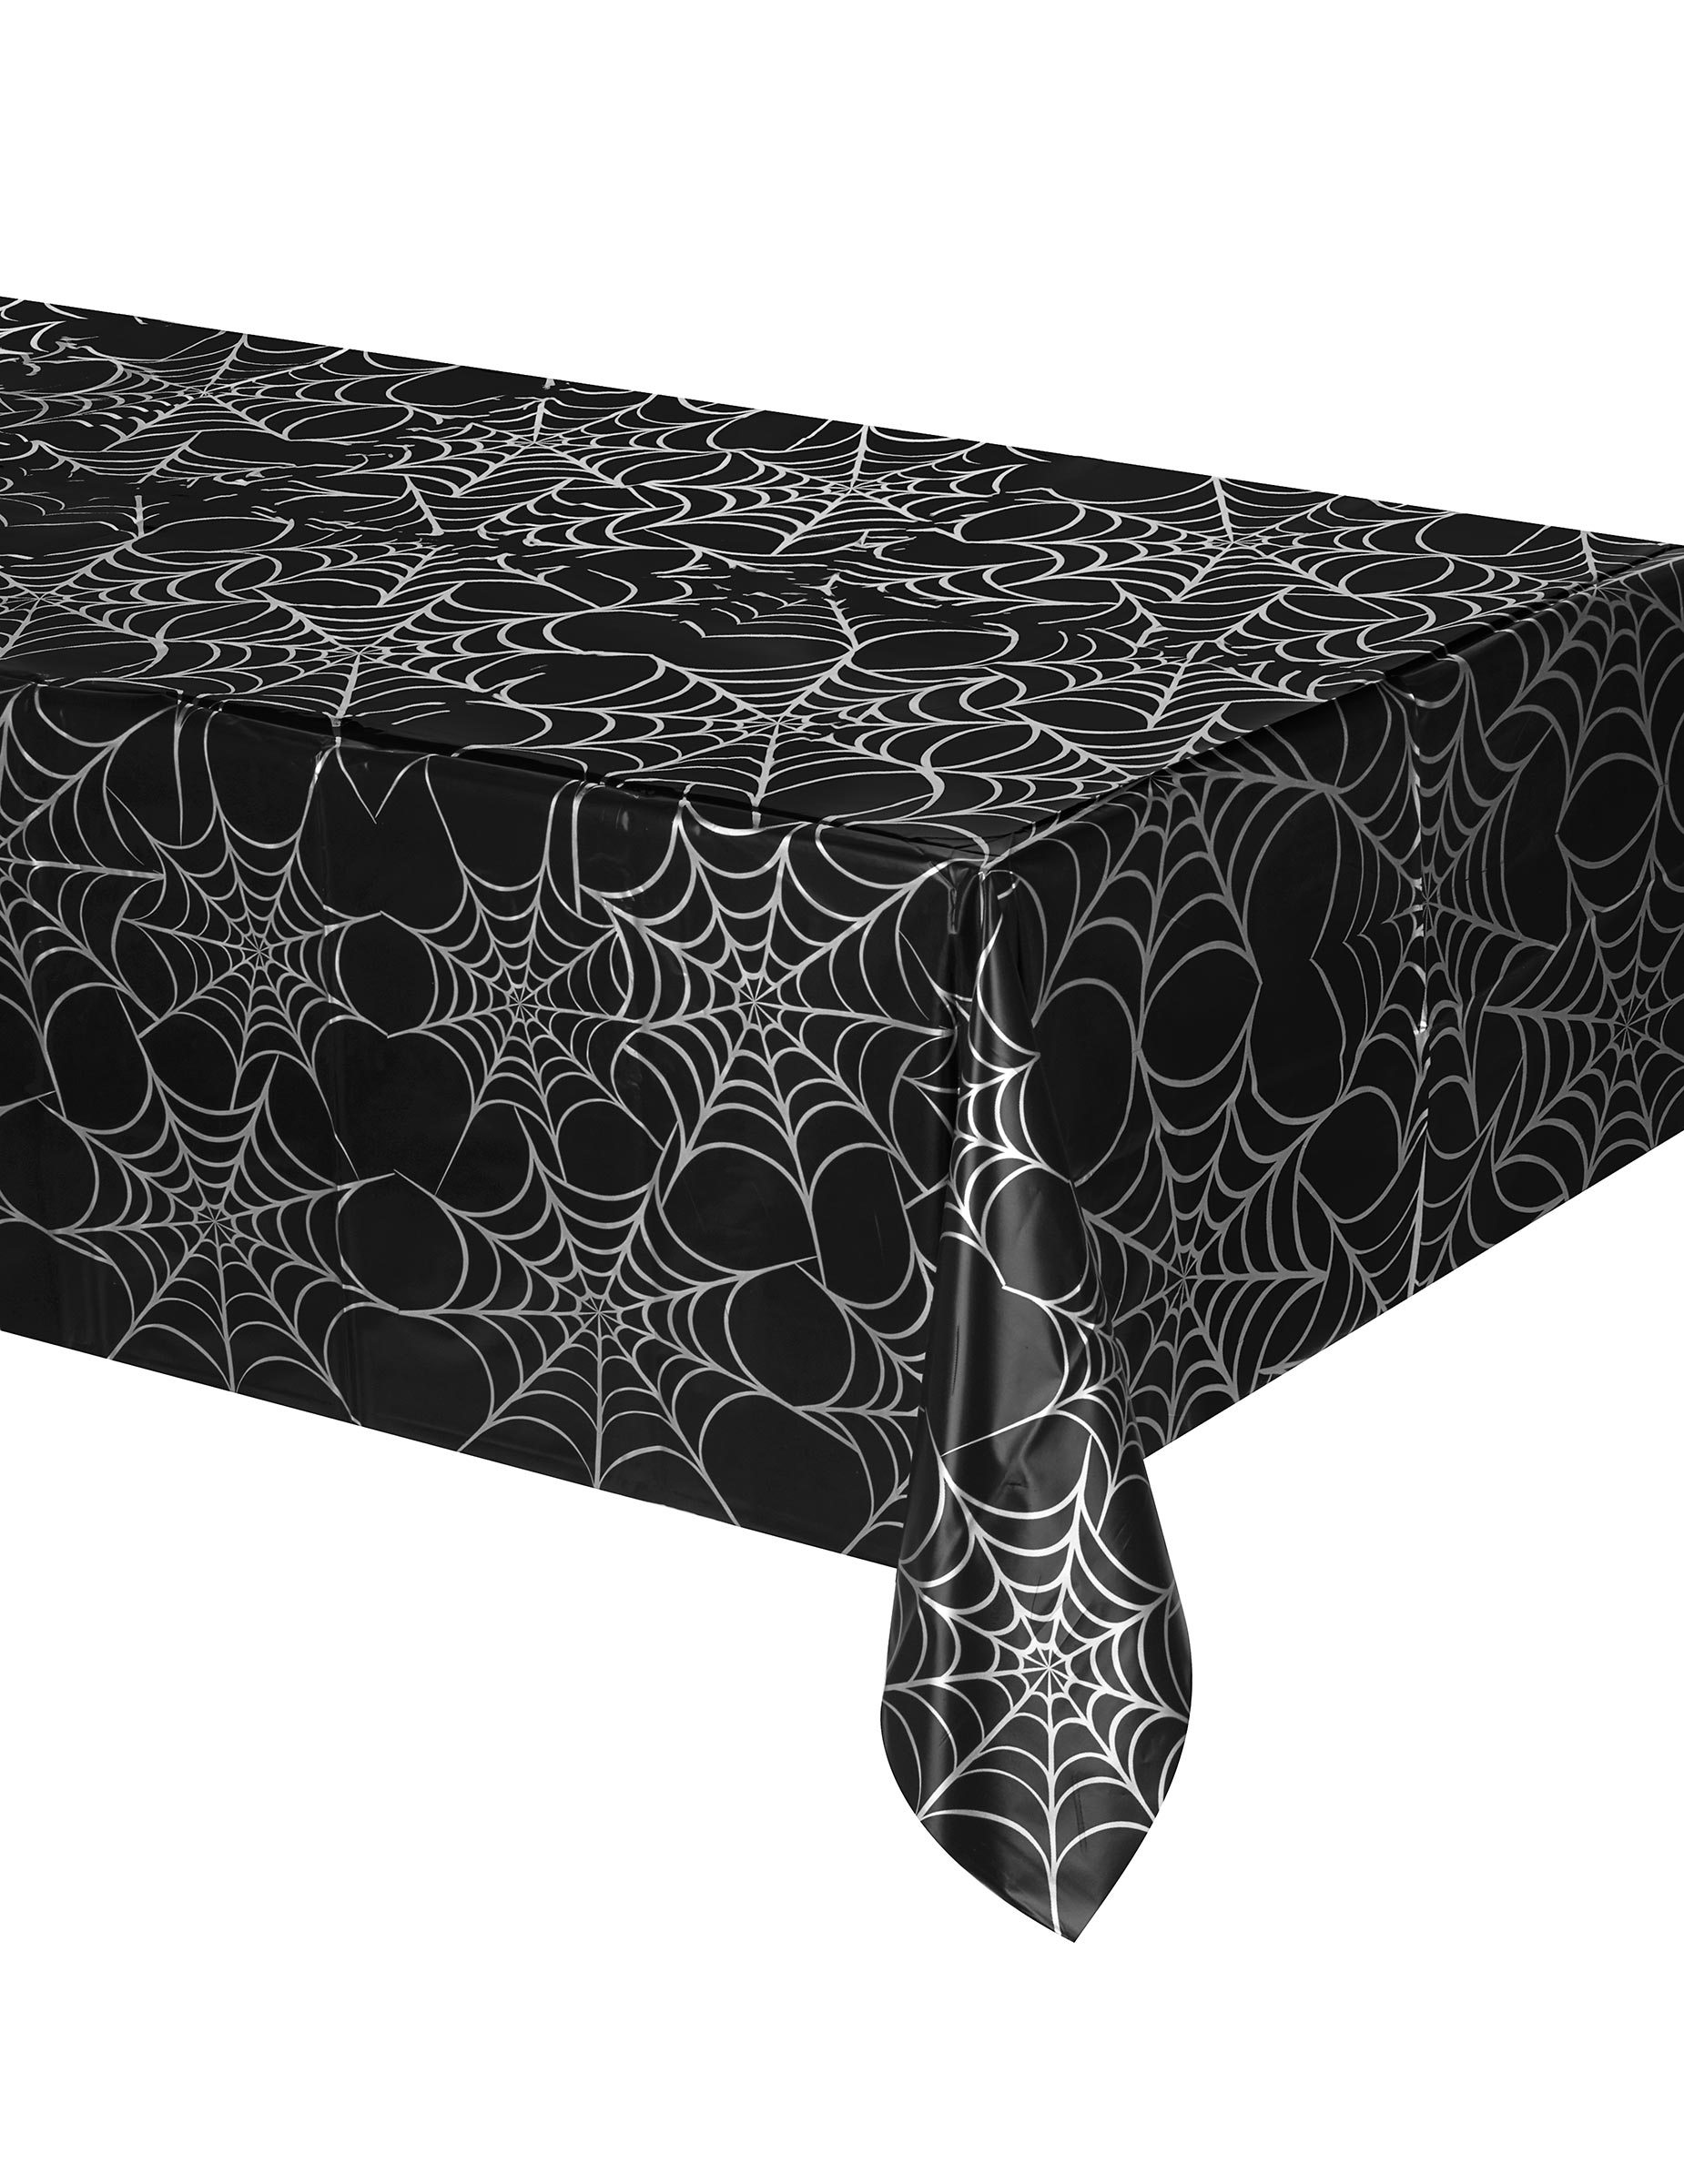 spinnen tischdecke halloween tischdeko spinnennetz schwarz weiss 1 35x2 7m g nstige faschings. Black Bedroom Furniture Sets. Home Design Ideas